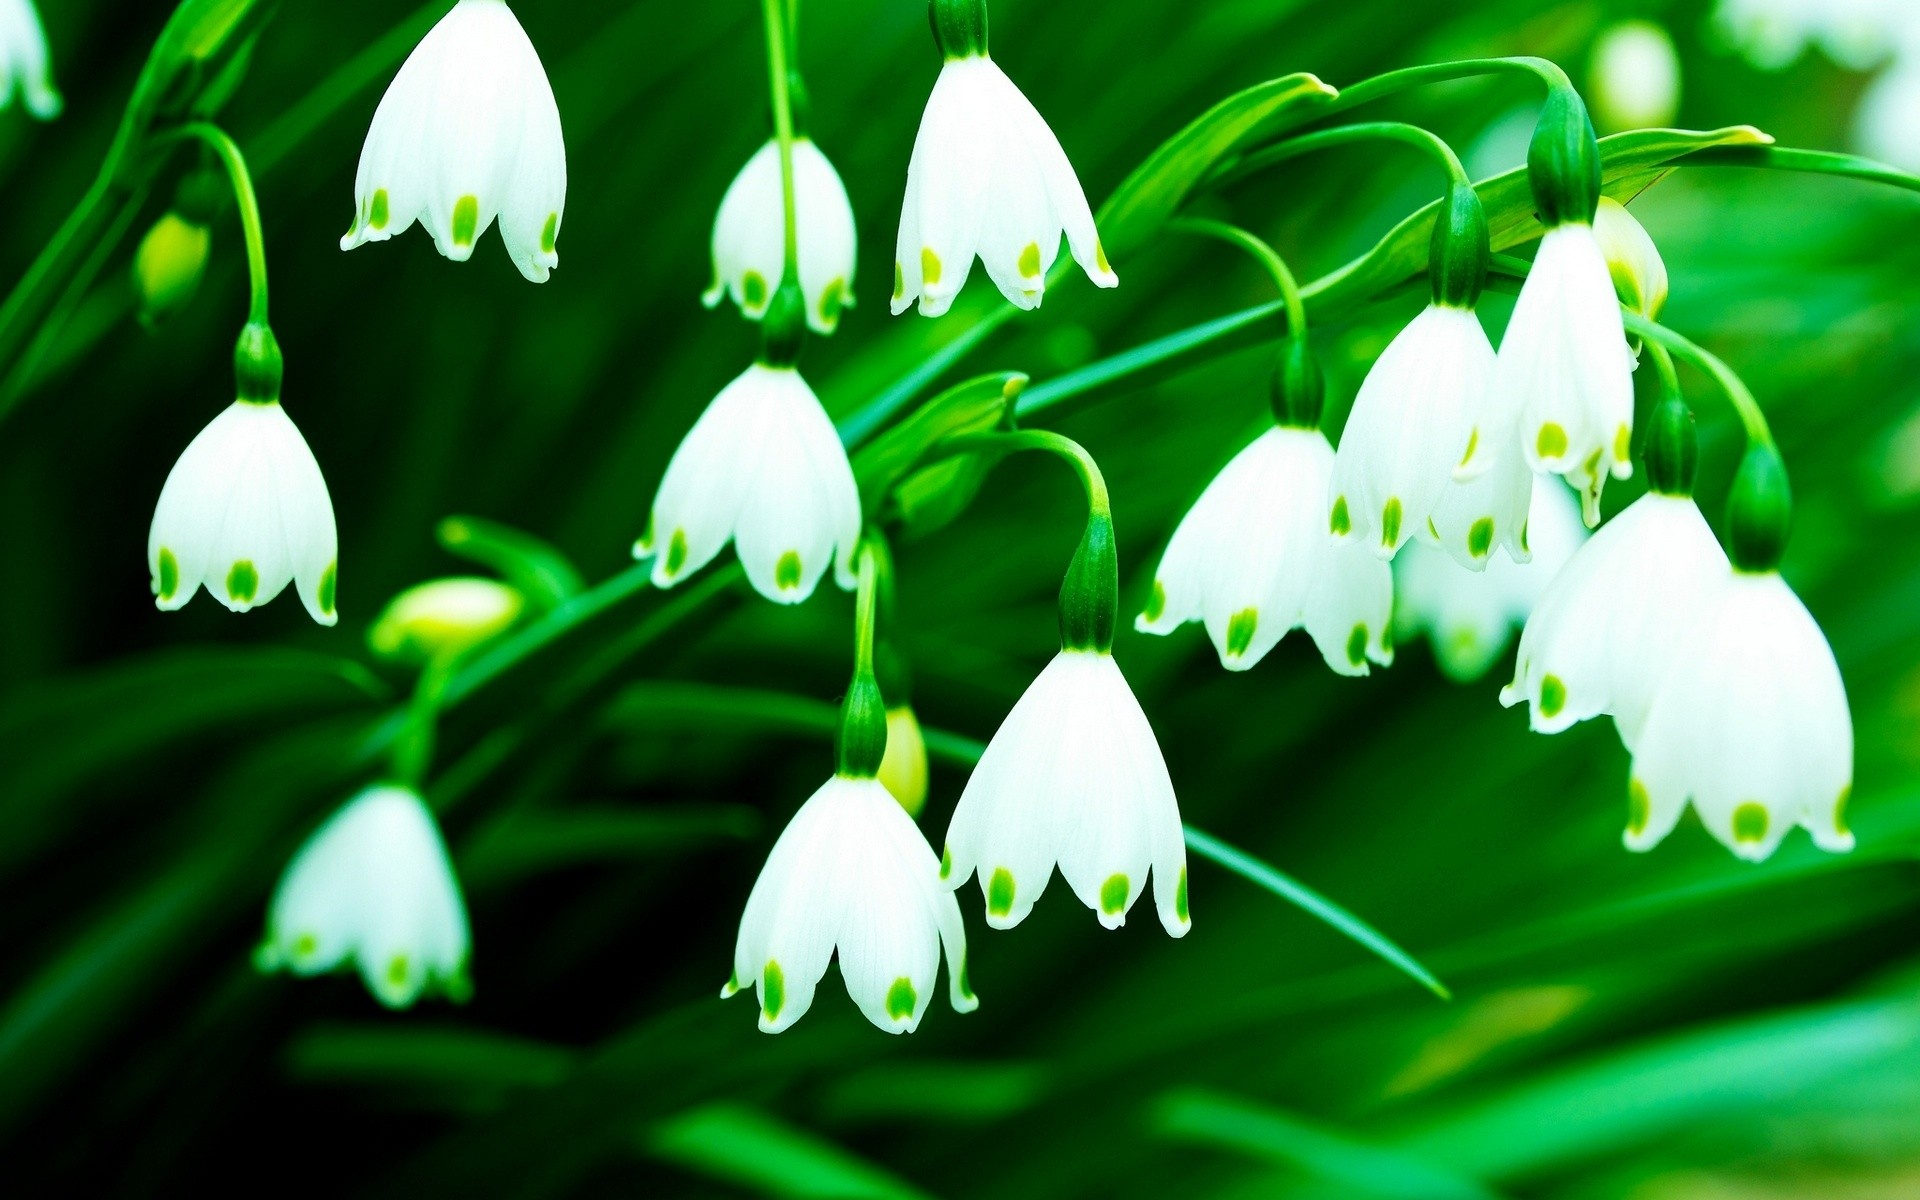 Flowers lily of the valley white flowers wallpaper 1920x1200 flowers lily of the valley white flowers wallpaper 1920x1200 199823 wallpaperup izmirmasajfo